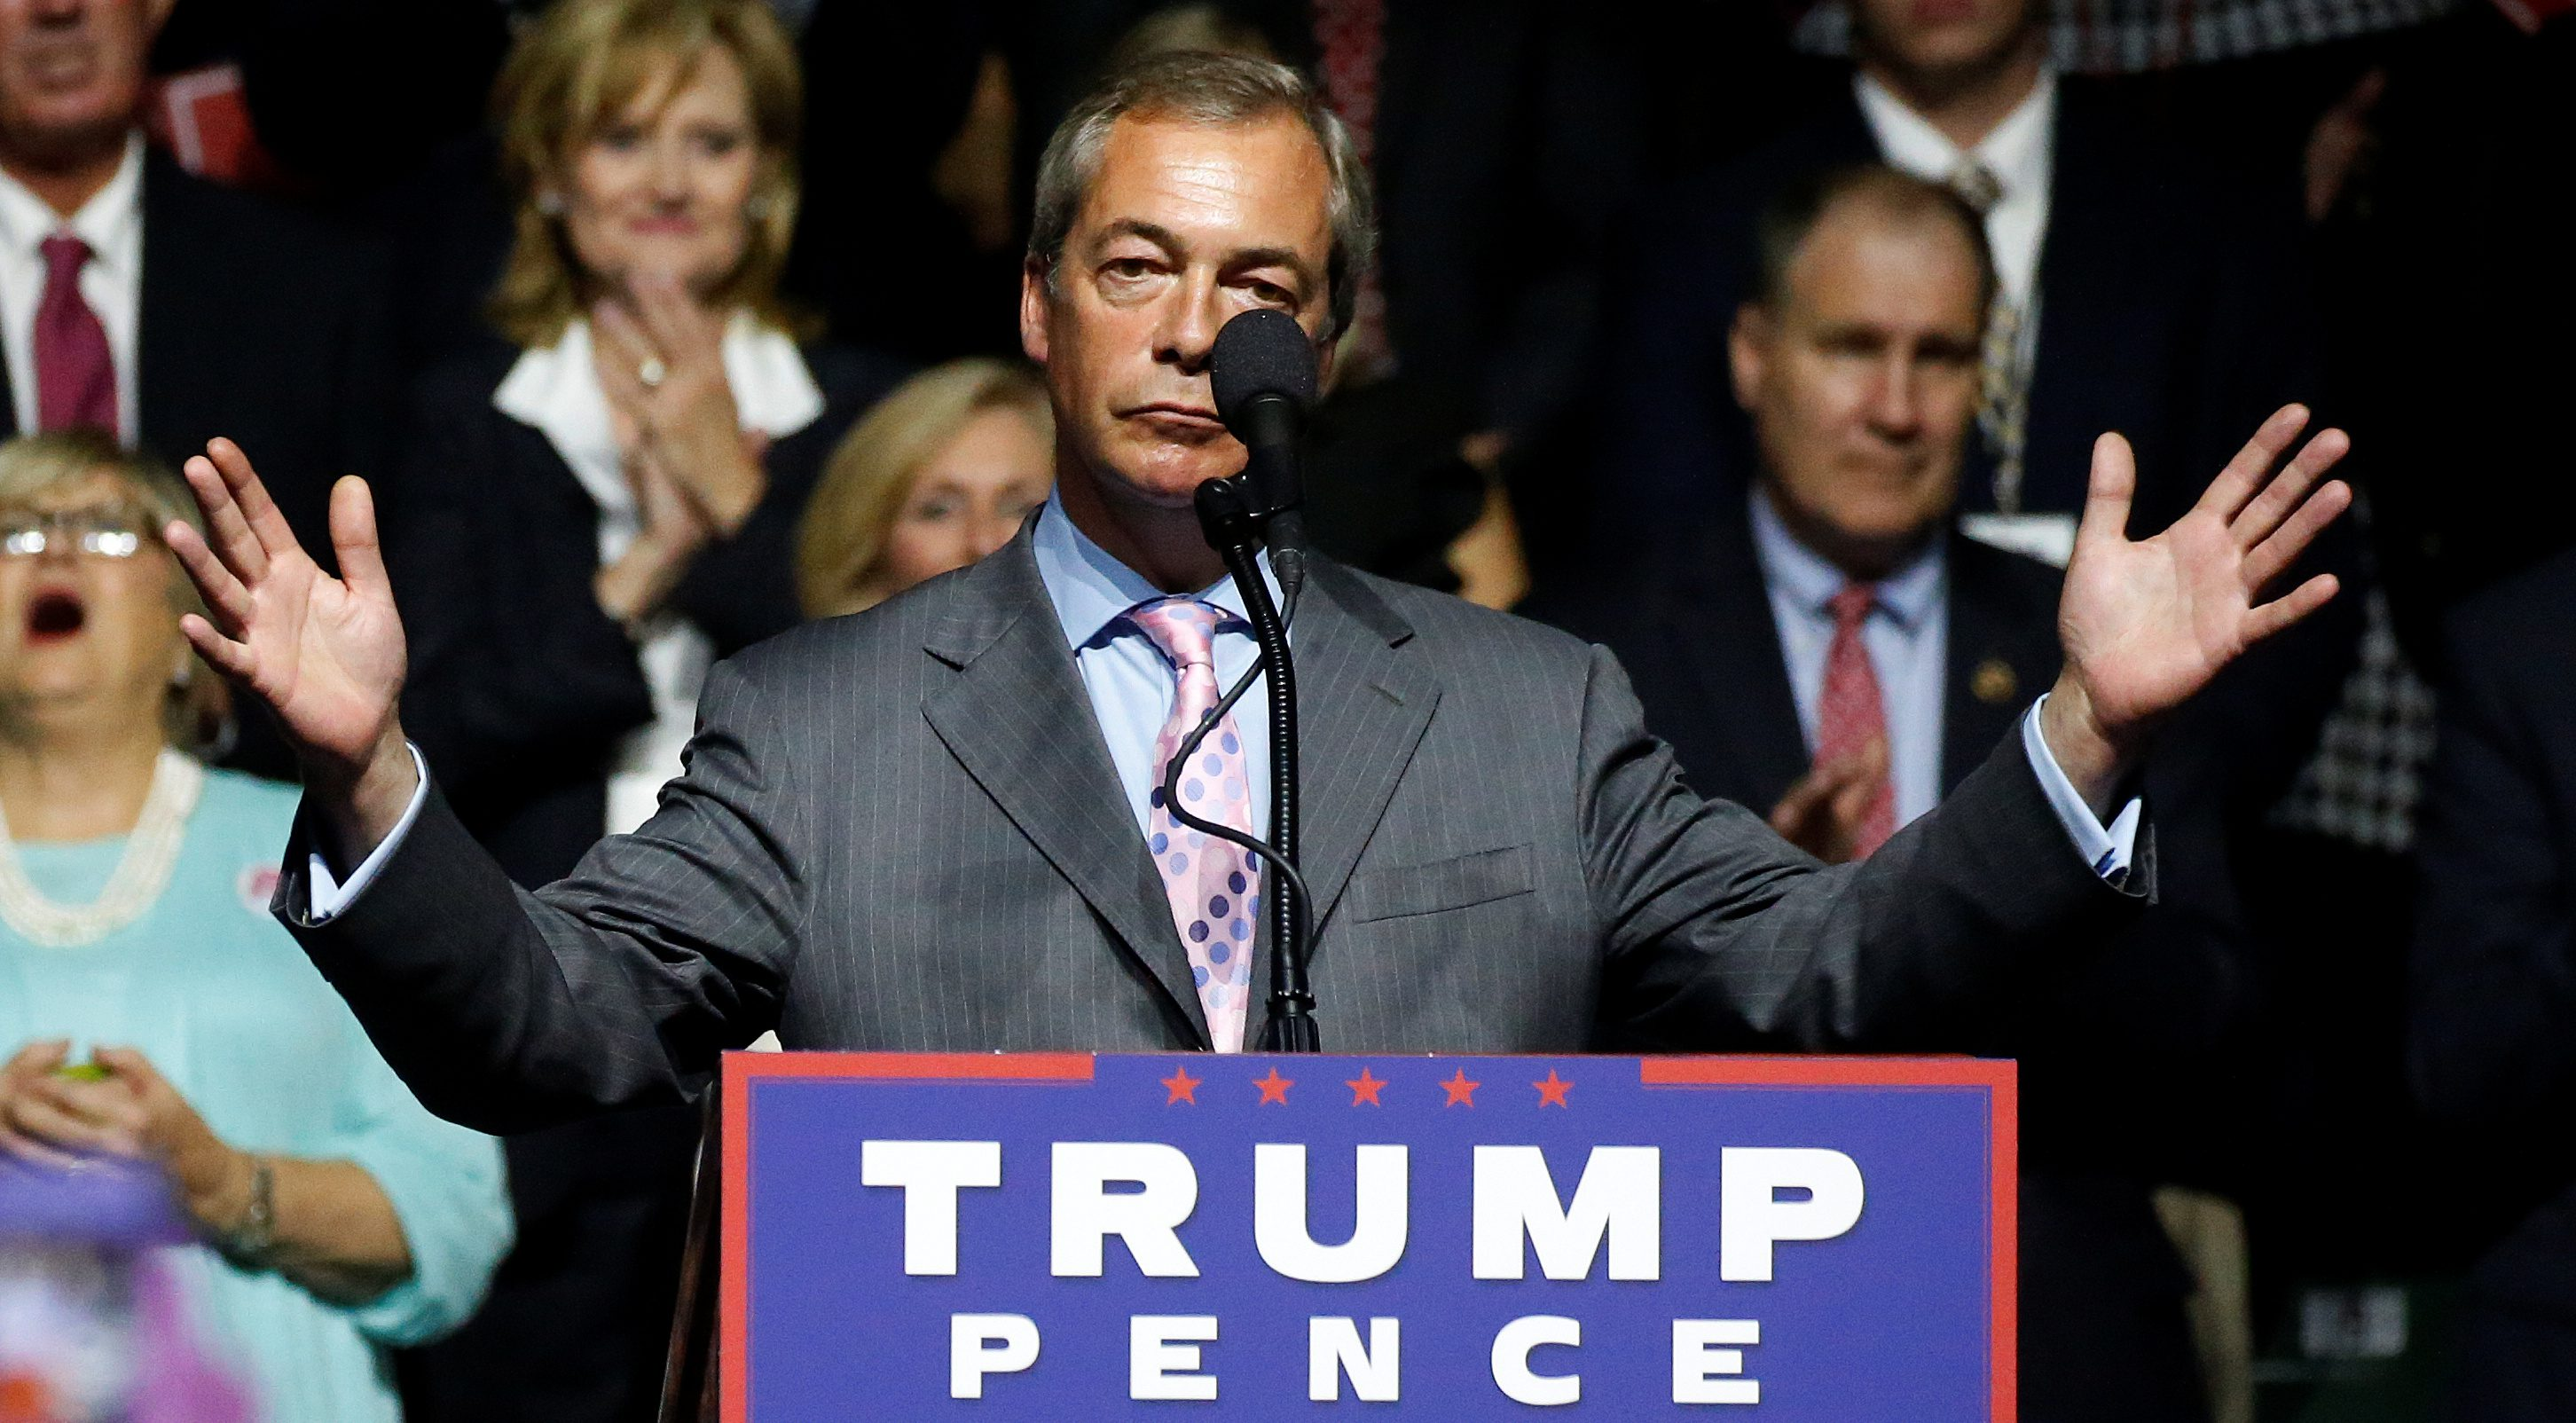 Nigel Farage introduces Donald Trump at a Mississippi presidential rally